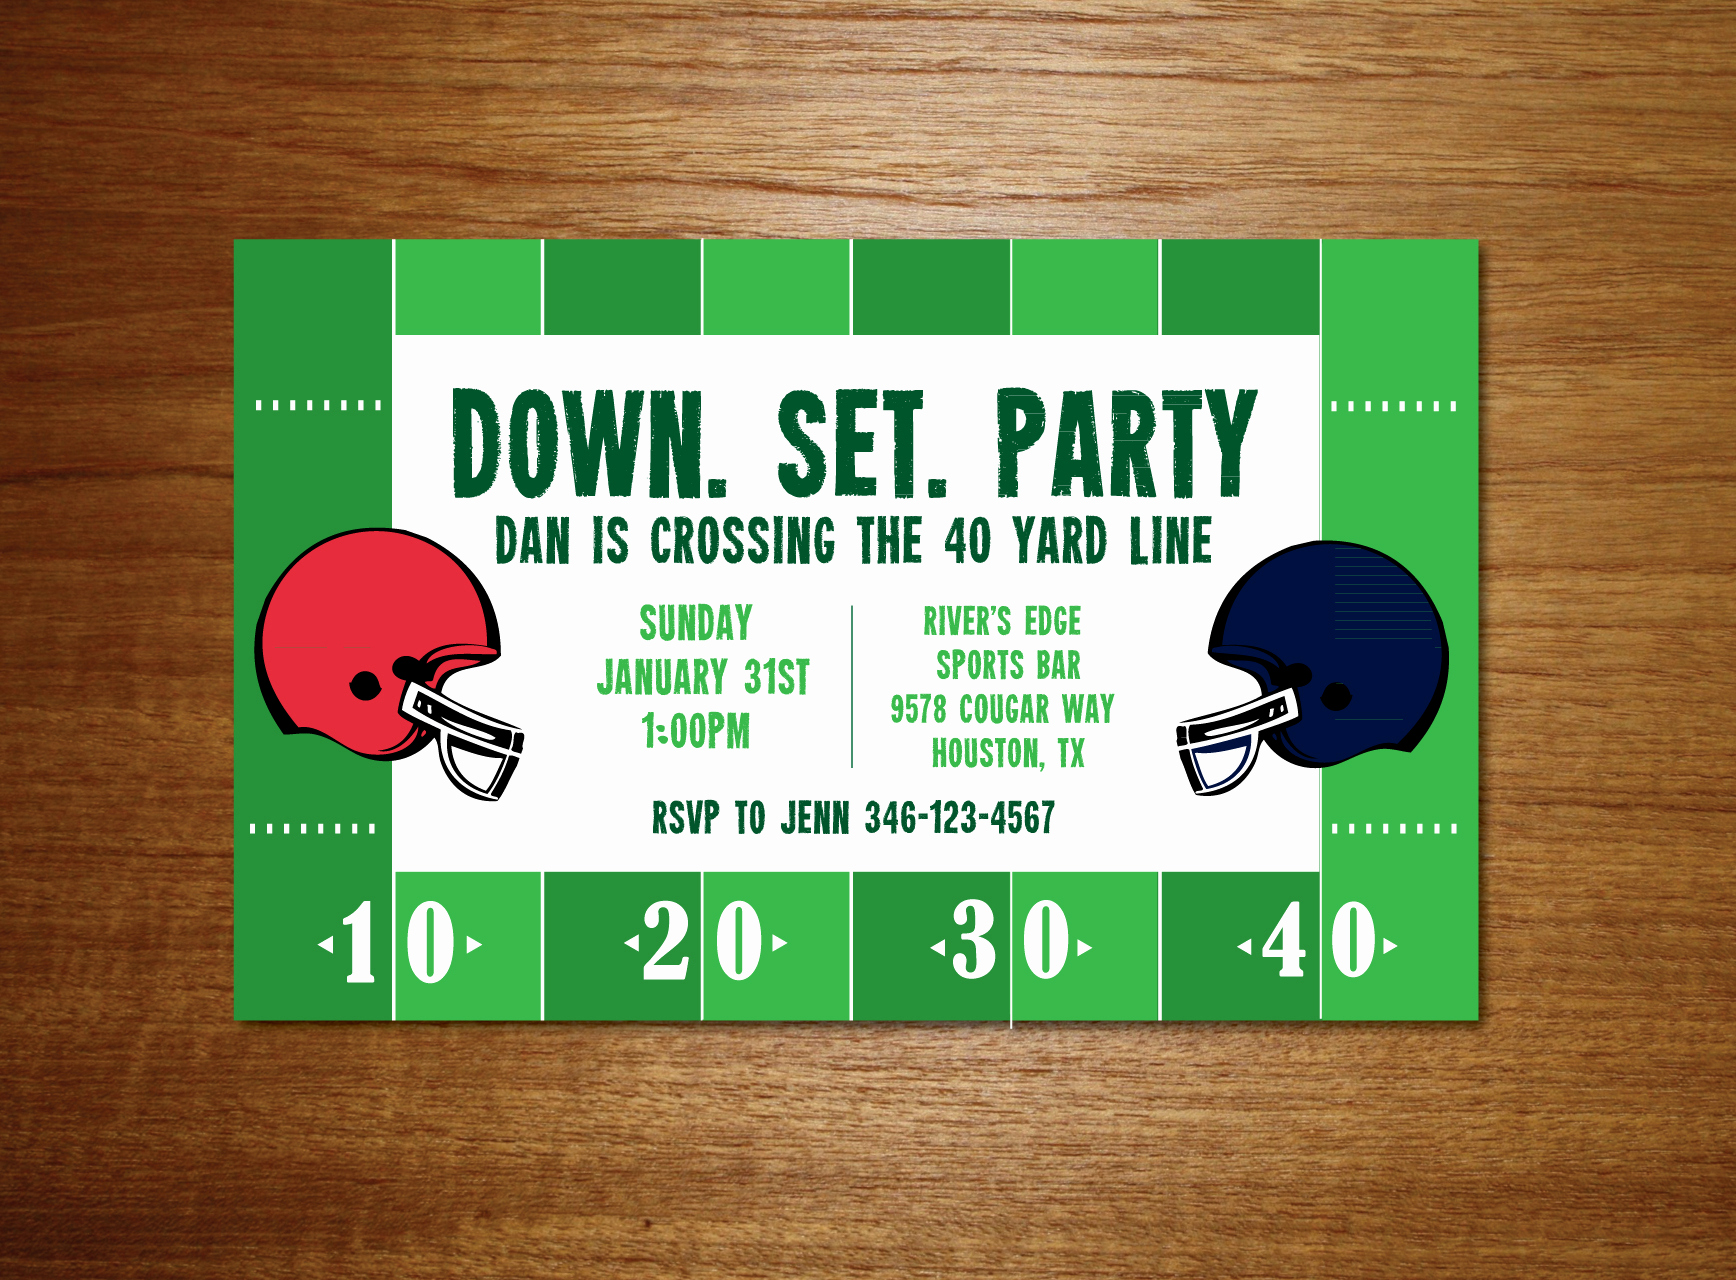 Superbowl Party Invitation Wording Luxury Football Party Invitation Superbowl Party Invitation